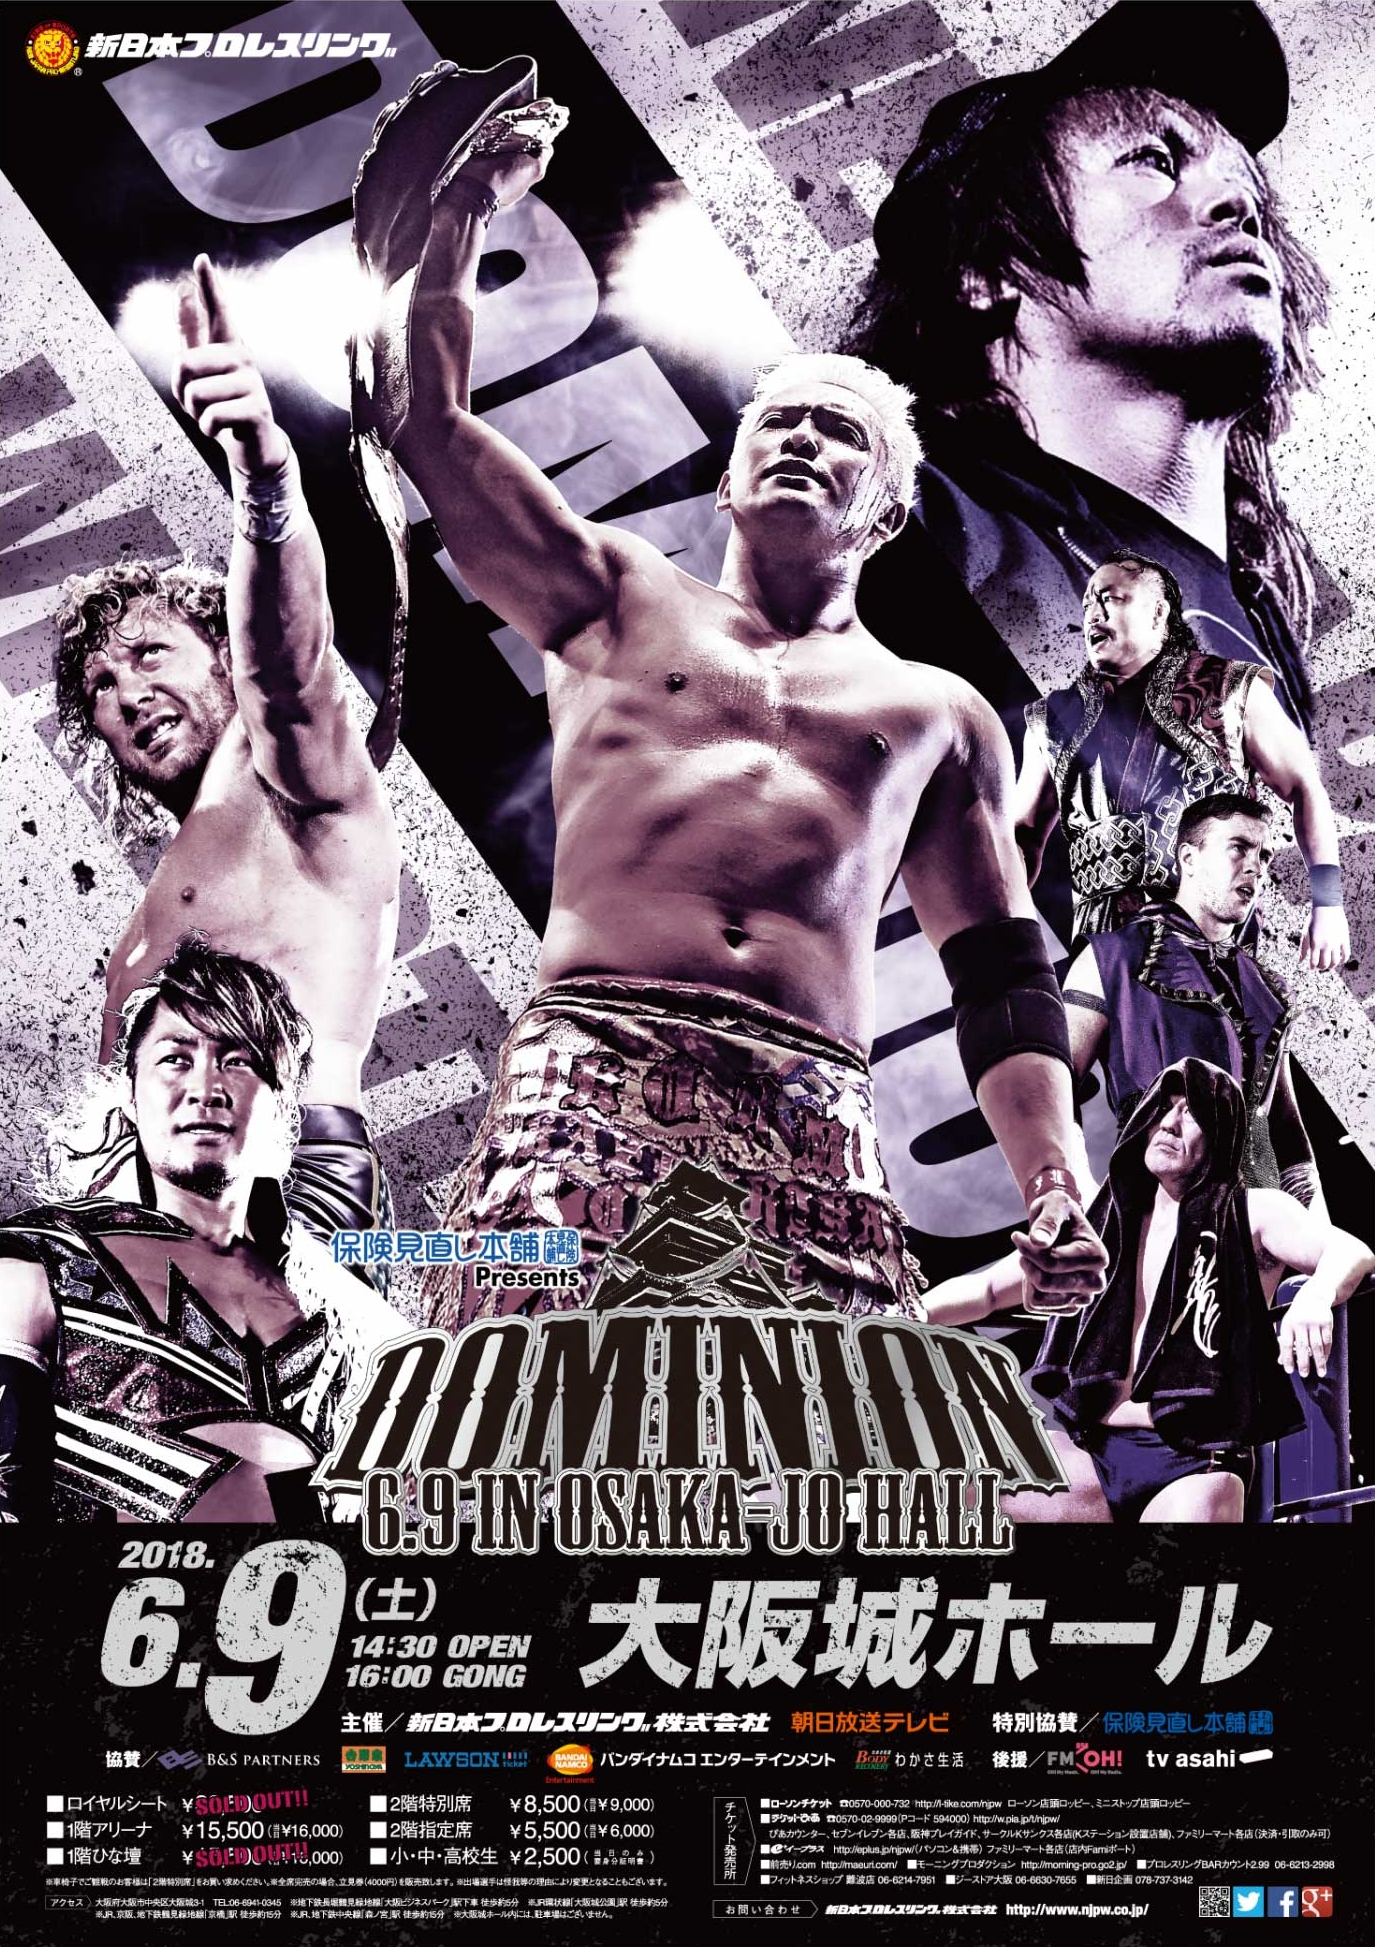 NJPW Dominion 6.9.18 In Osaka-Jo Hall